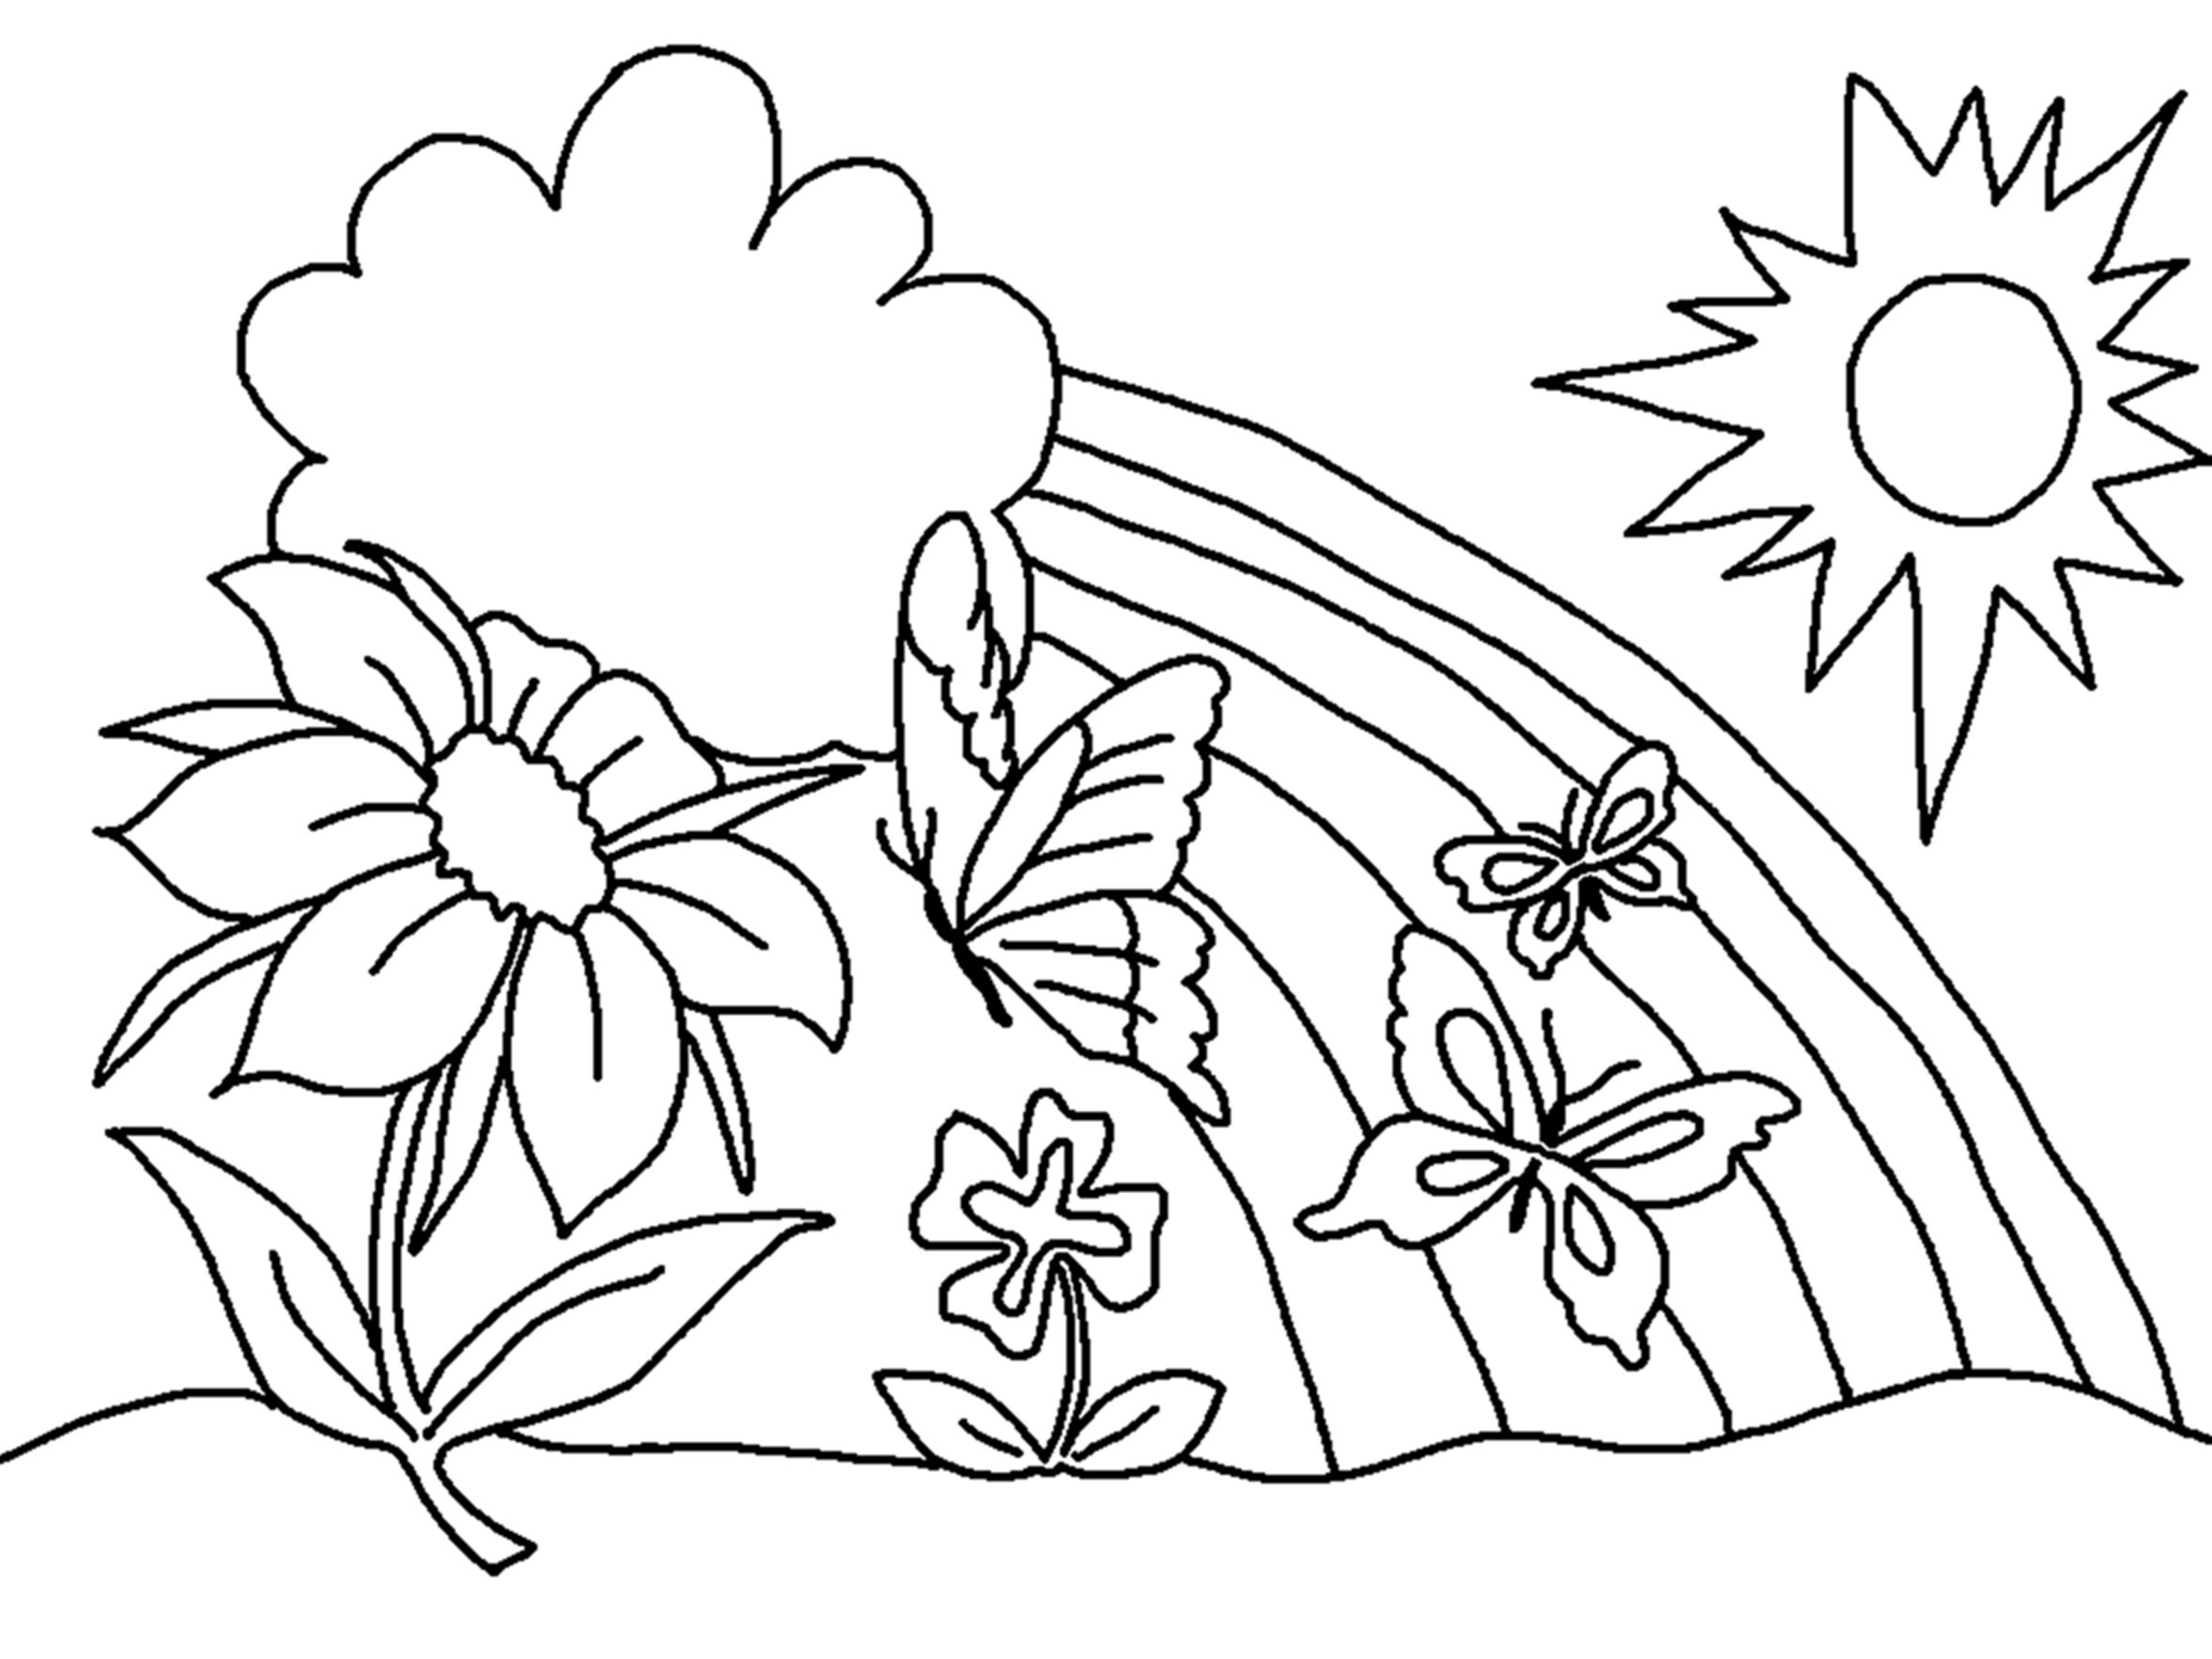 25 Creative Photo Of Spring Flowers Coloring Pages Albanysinsanity Com Printable Flower Coloring Pages Spring Coloring Pages Butterfly Coloring Page